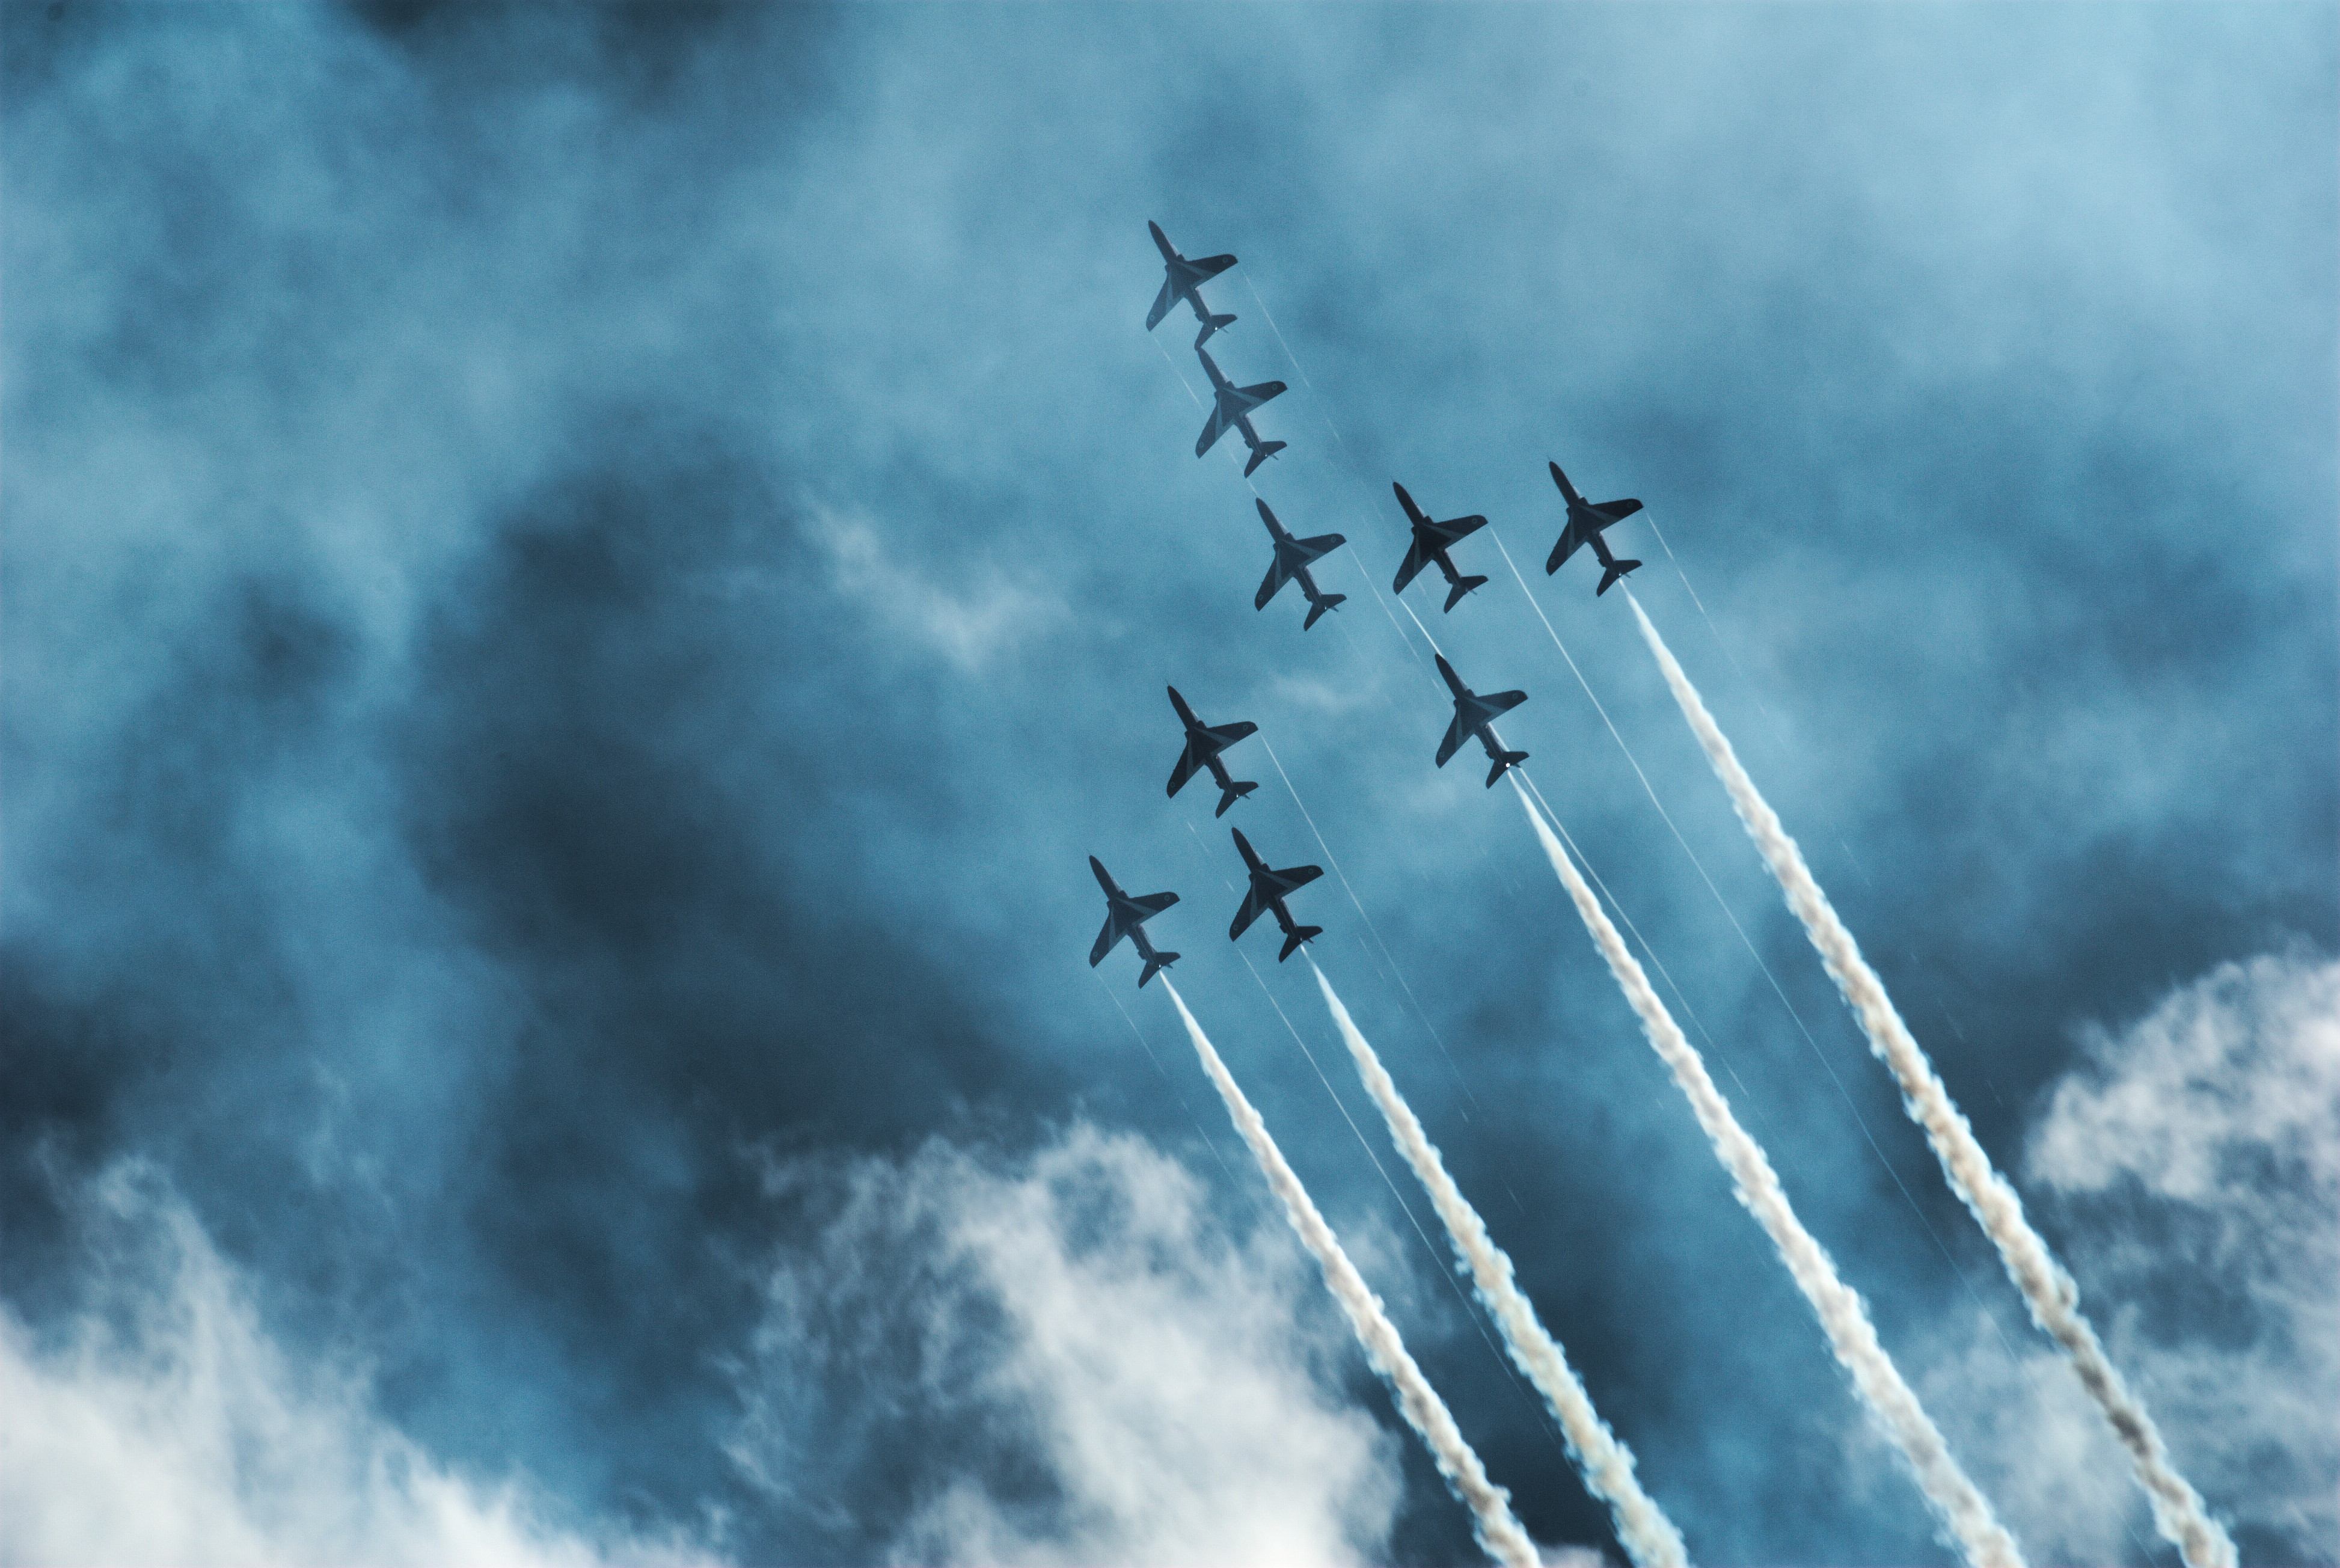 Red Arrows at the Farnborough International Airshow 2014